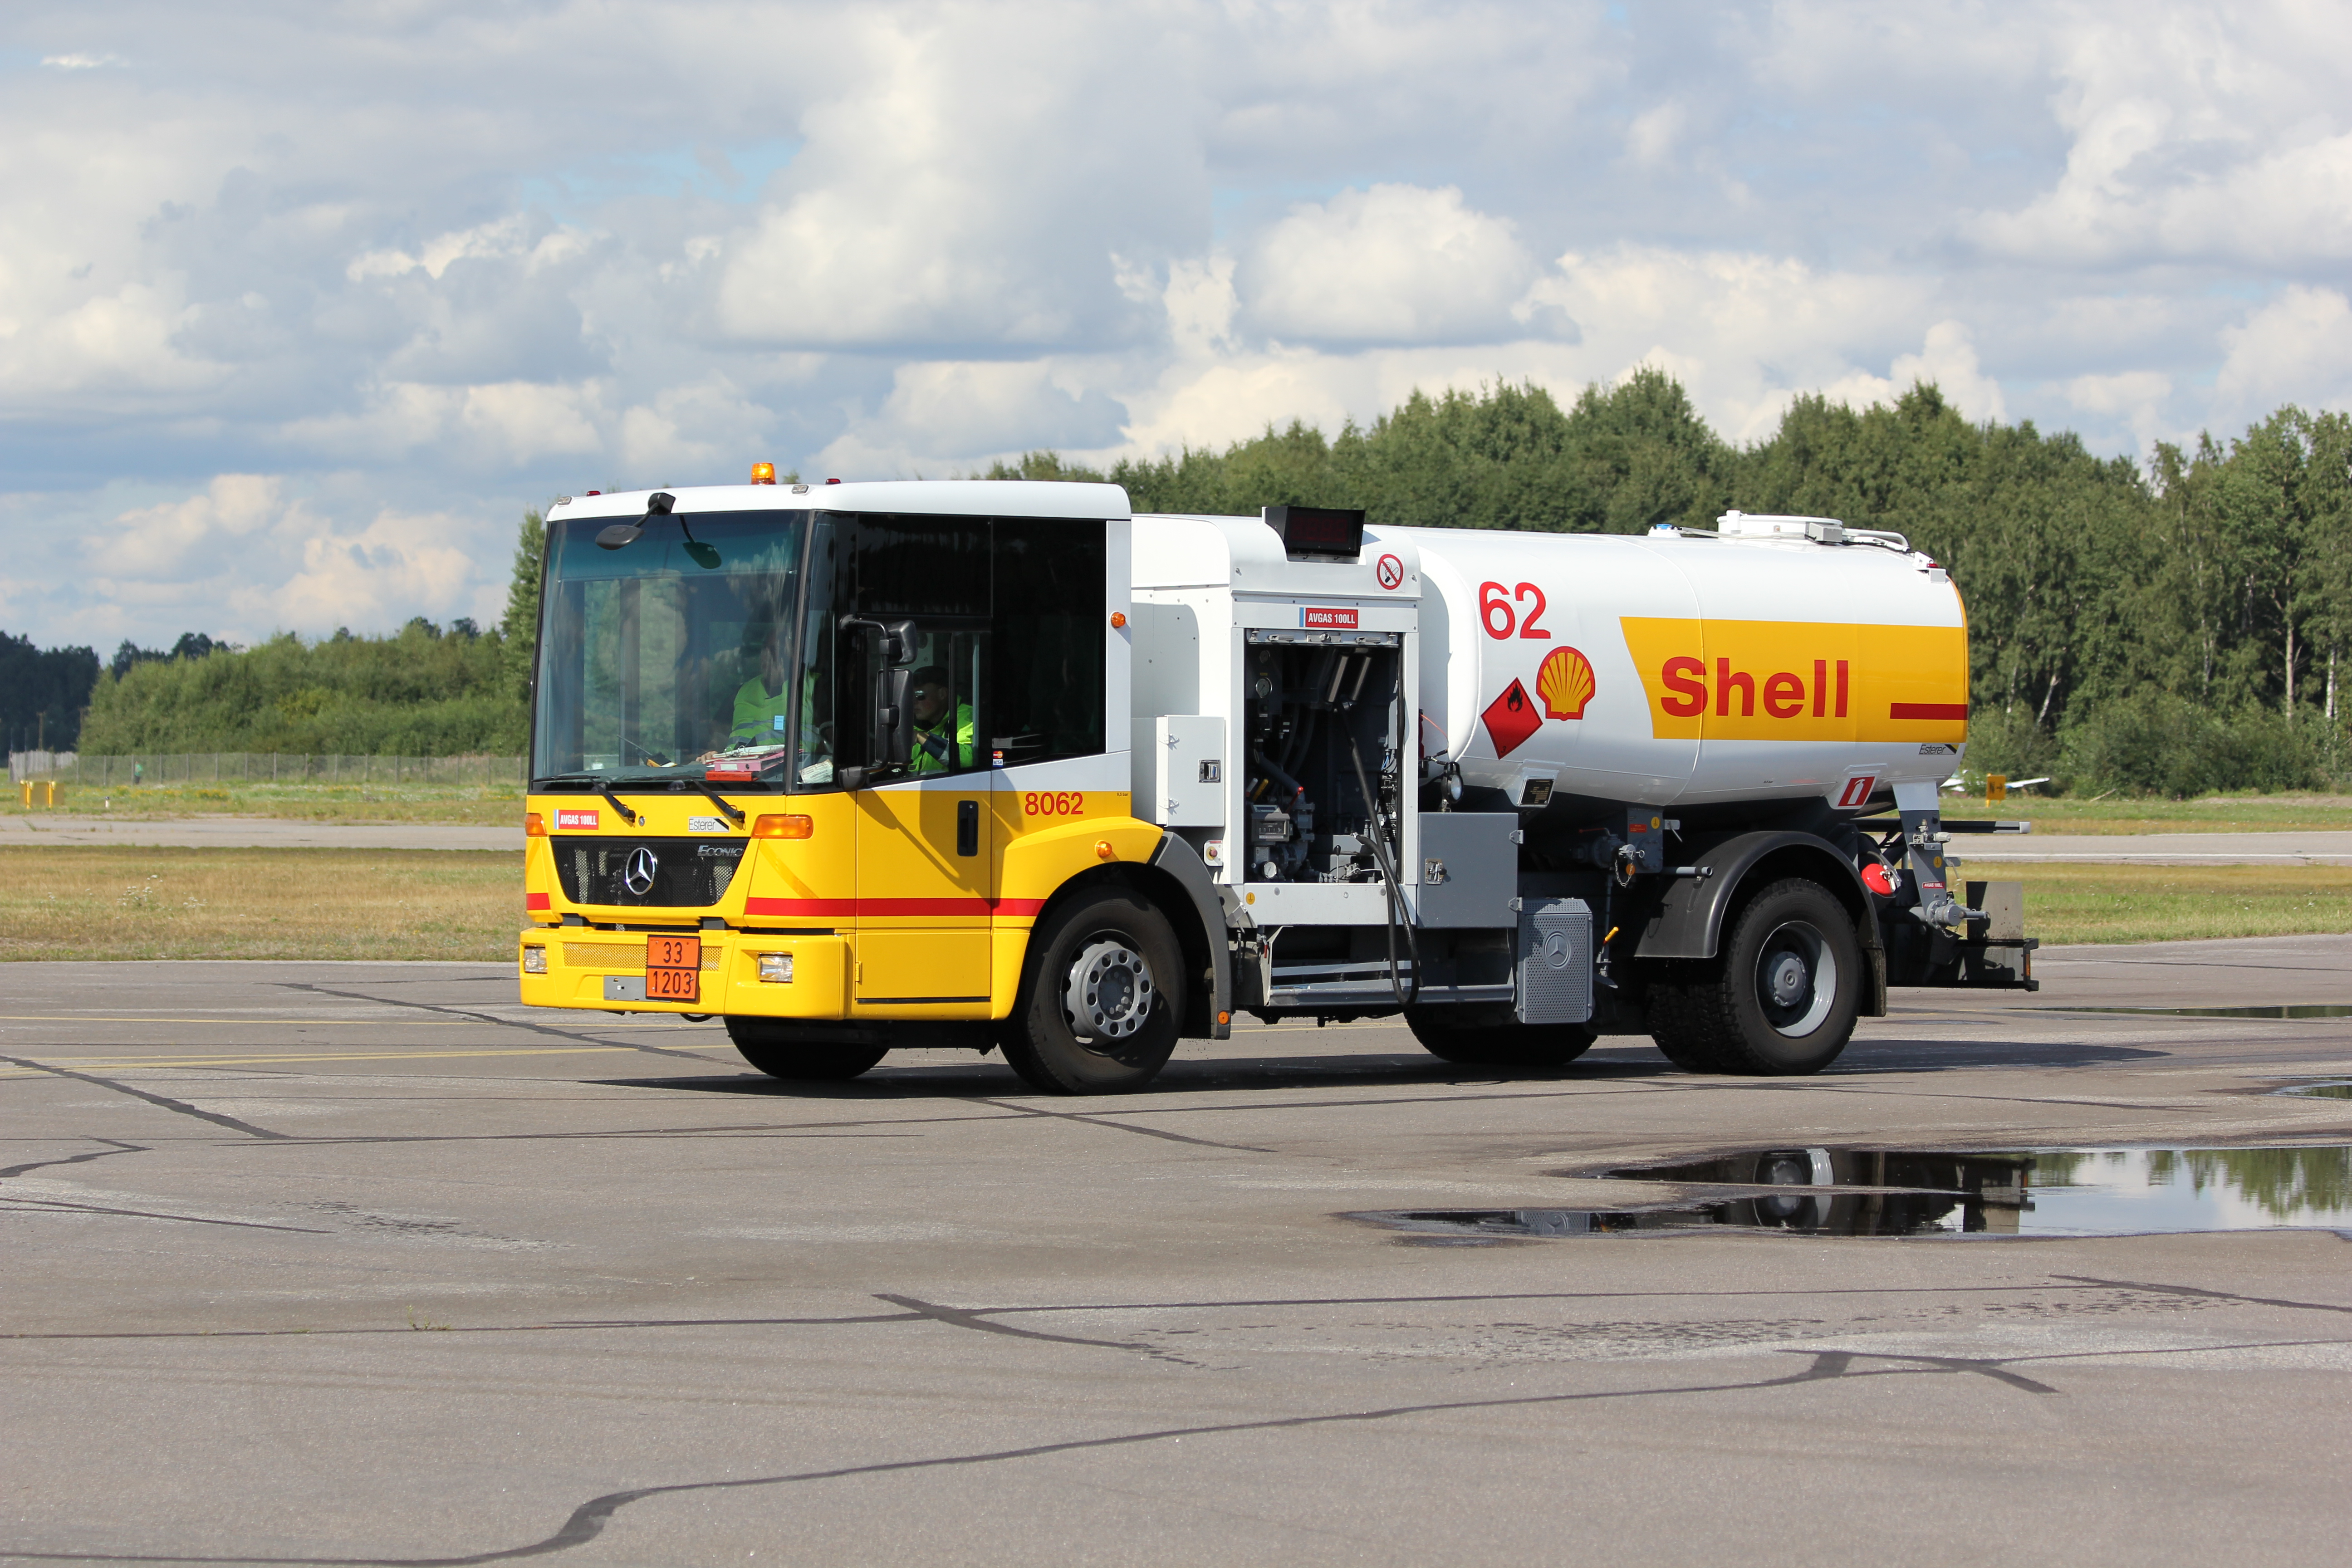 File:Mercedes-Benz Econic airport tanker Malmi 1.JPG